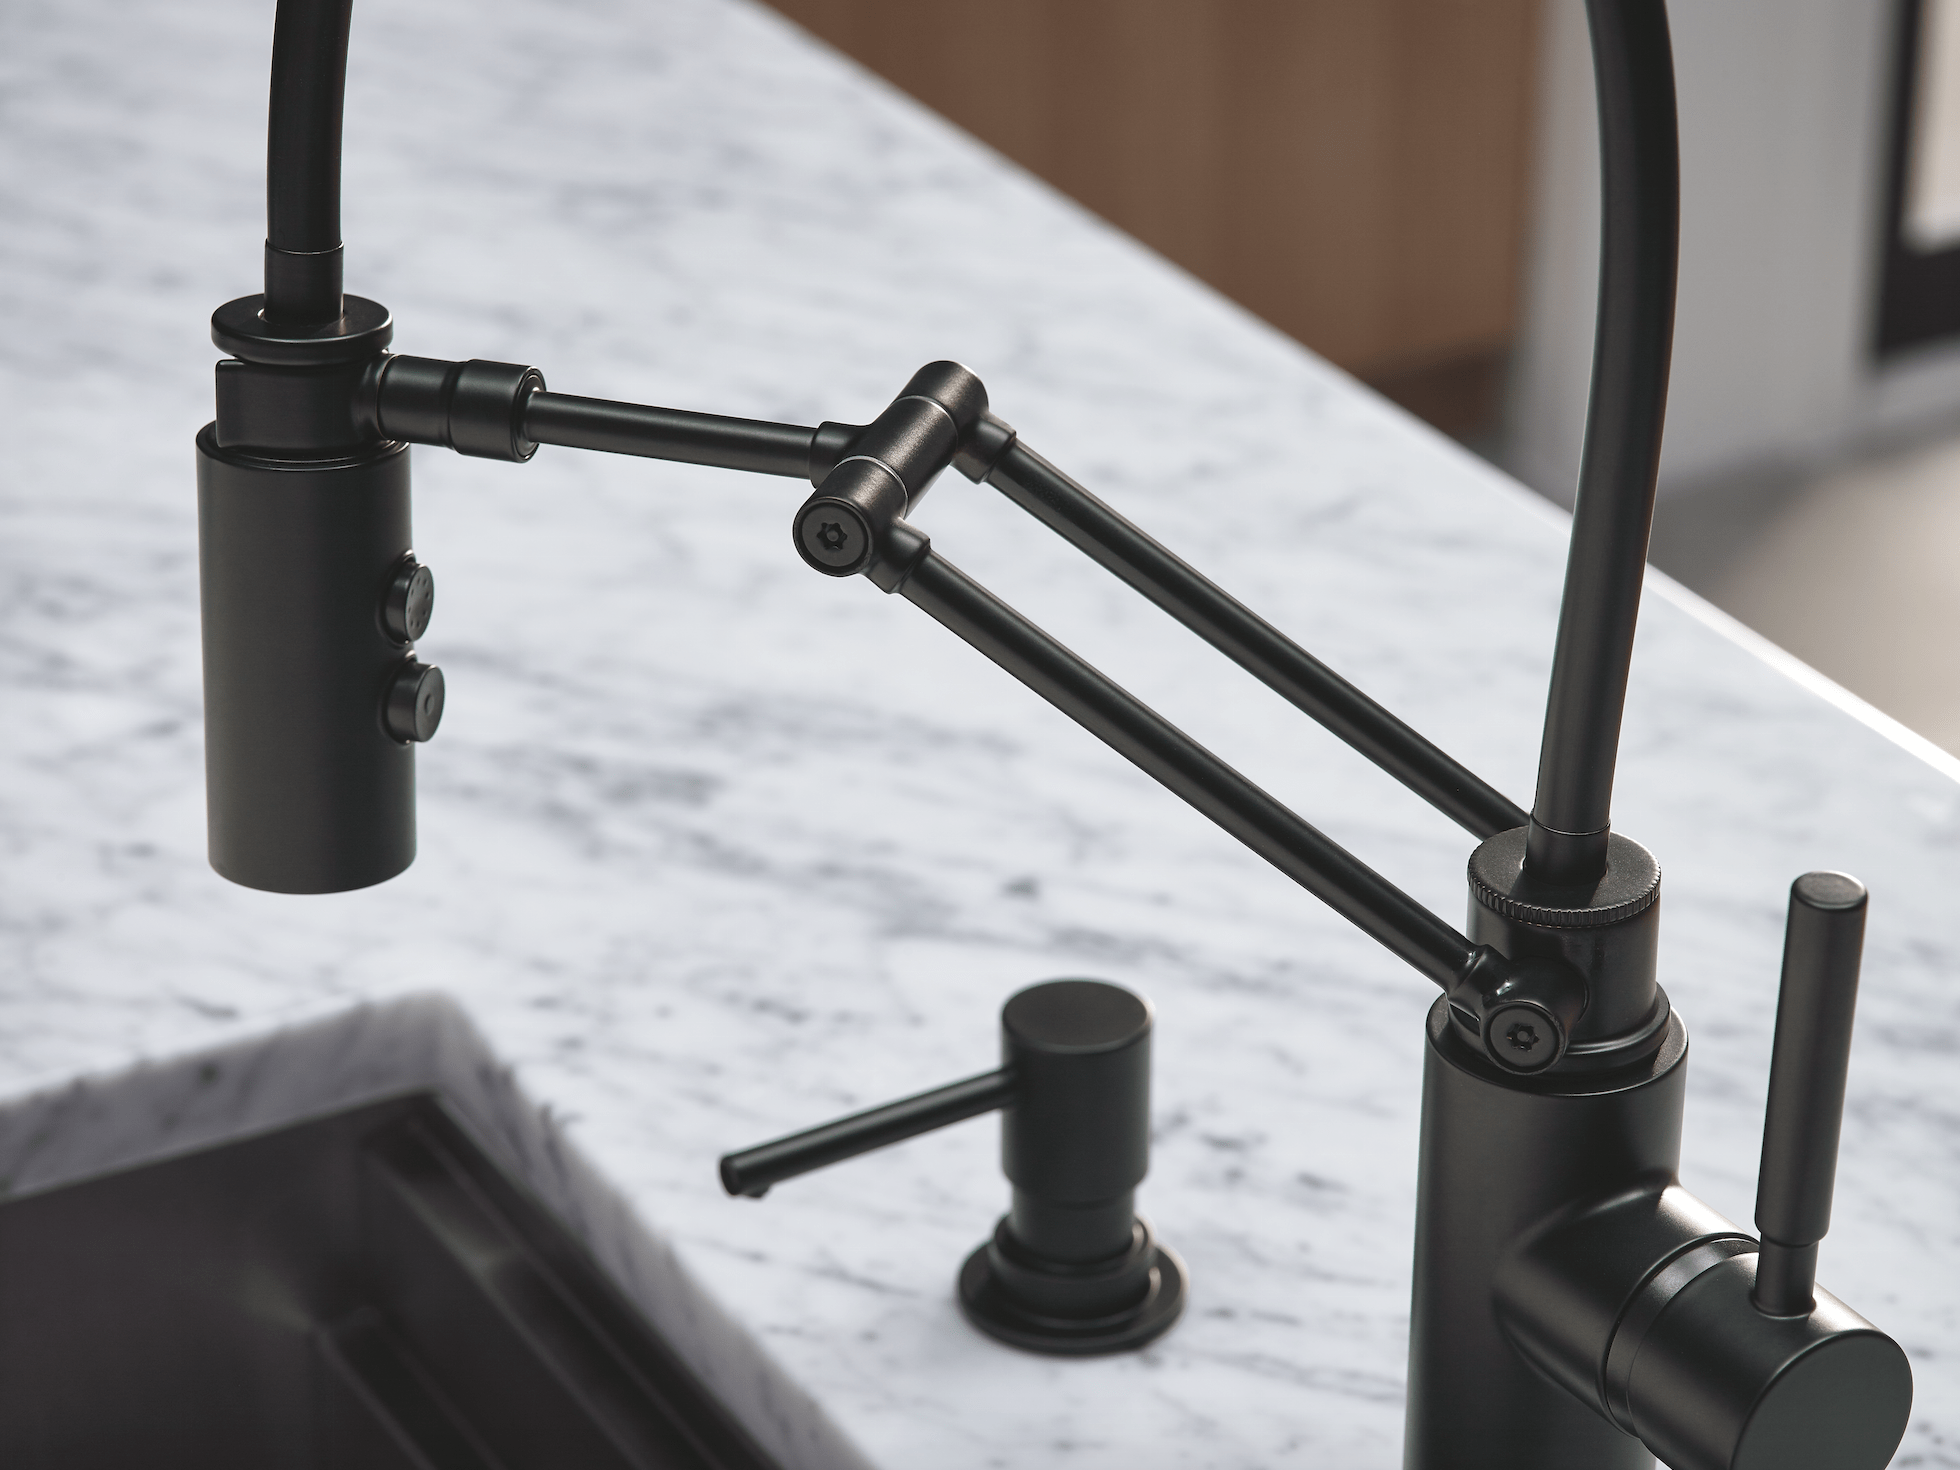 kitchen spaces black kitchen faucets The Solna Articulating Kitchen Faucet by Brizo in matte black was the hero in this modern kitchen space designed by